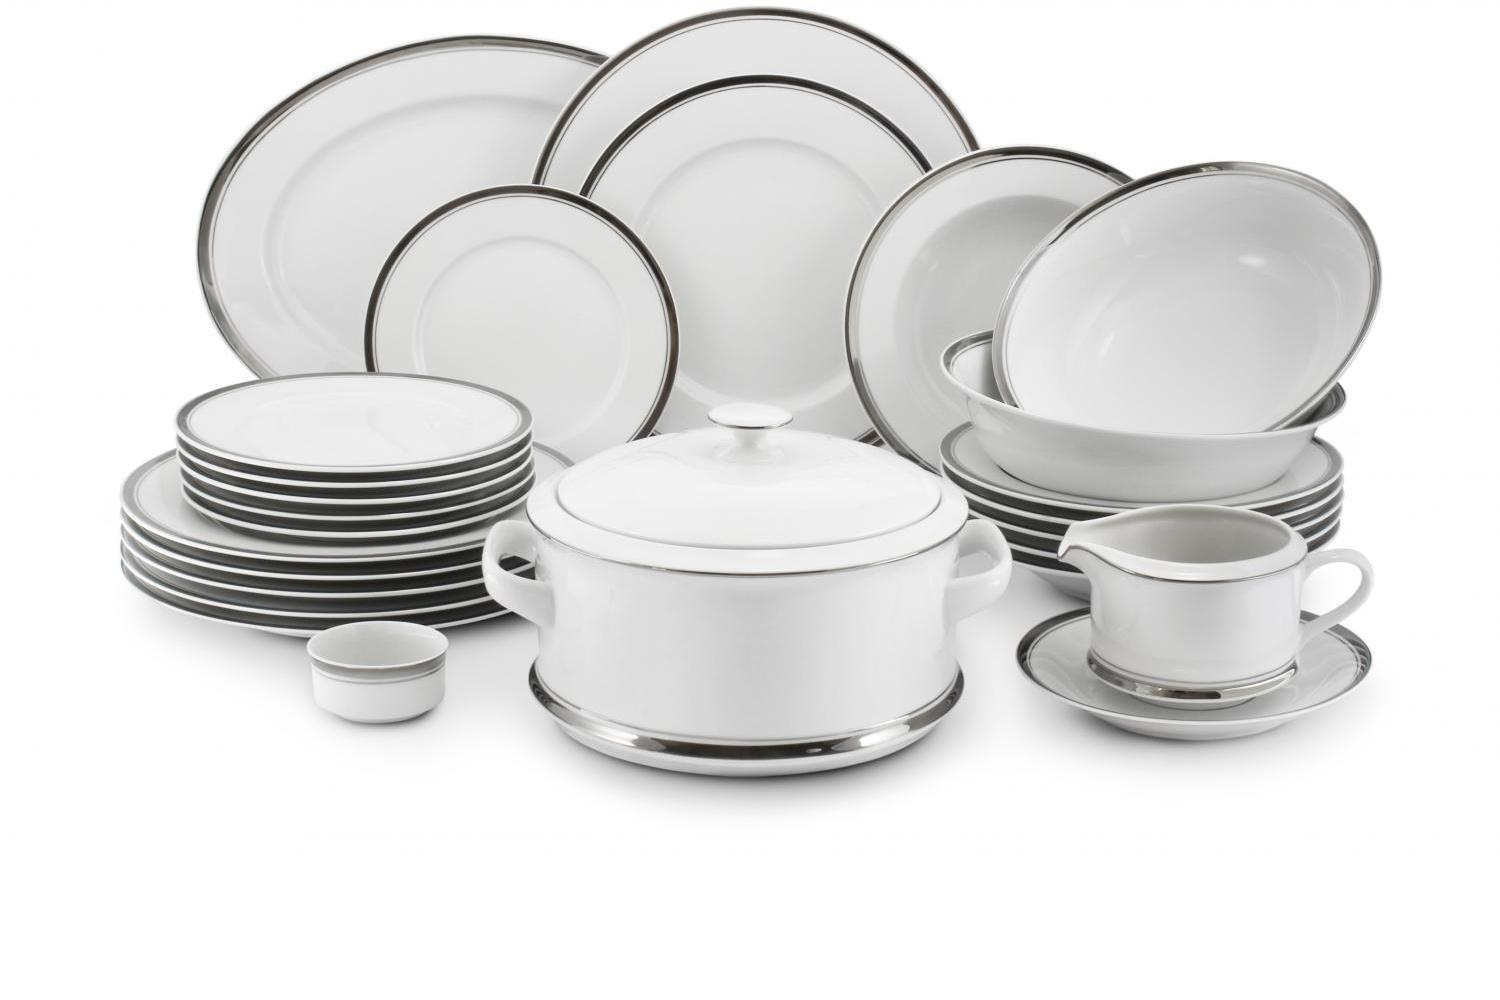 Dinner set 25-piece - Sabina with a platinum band